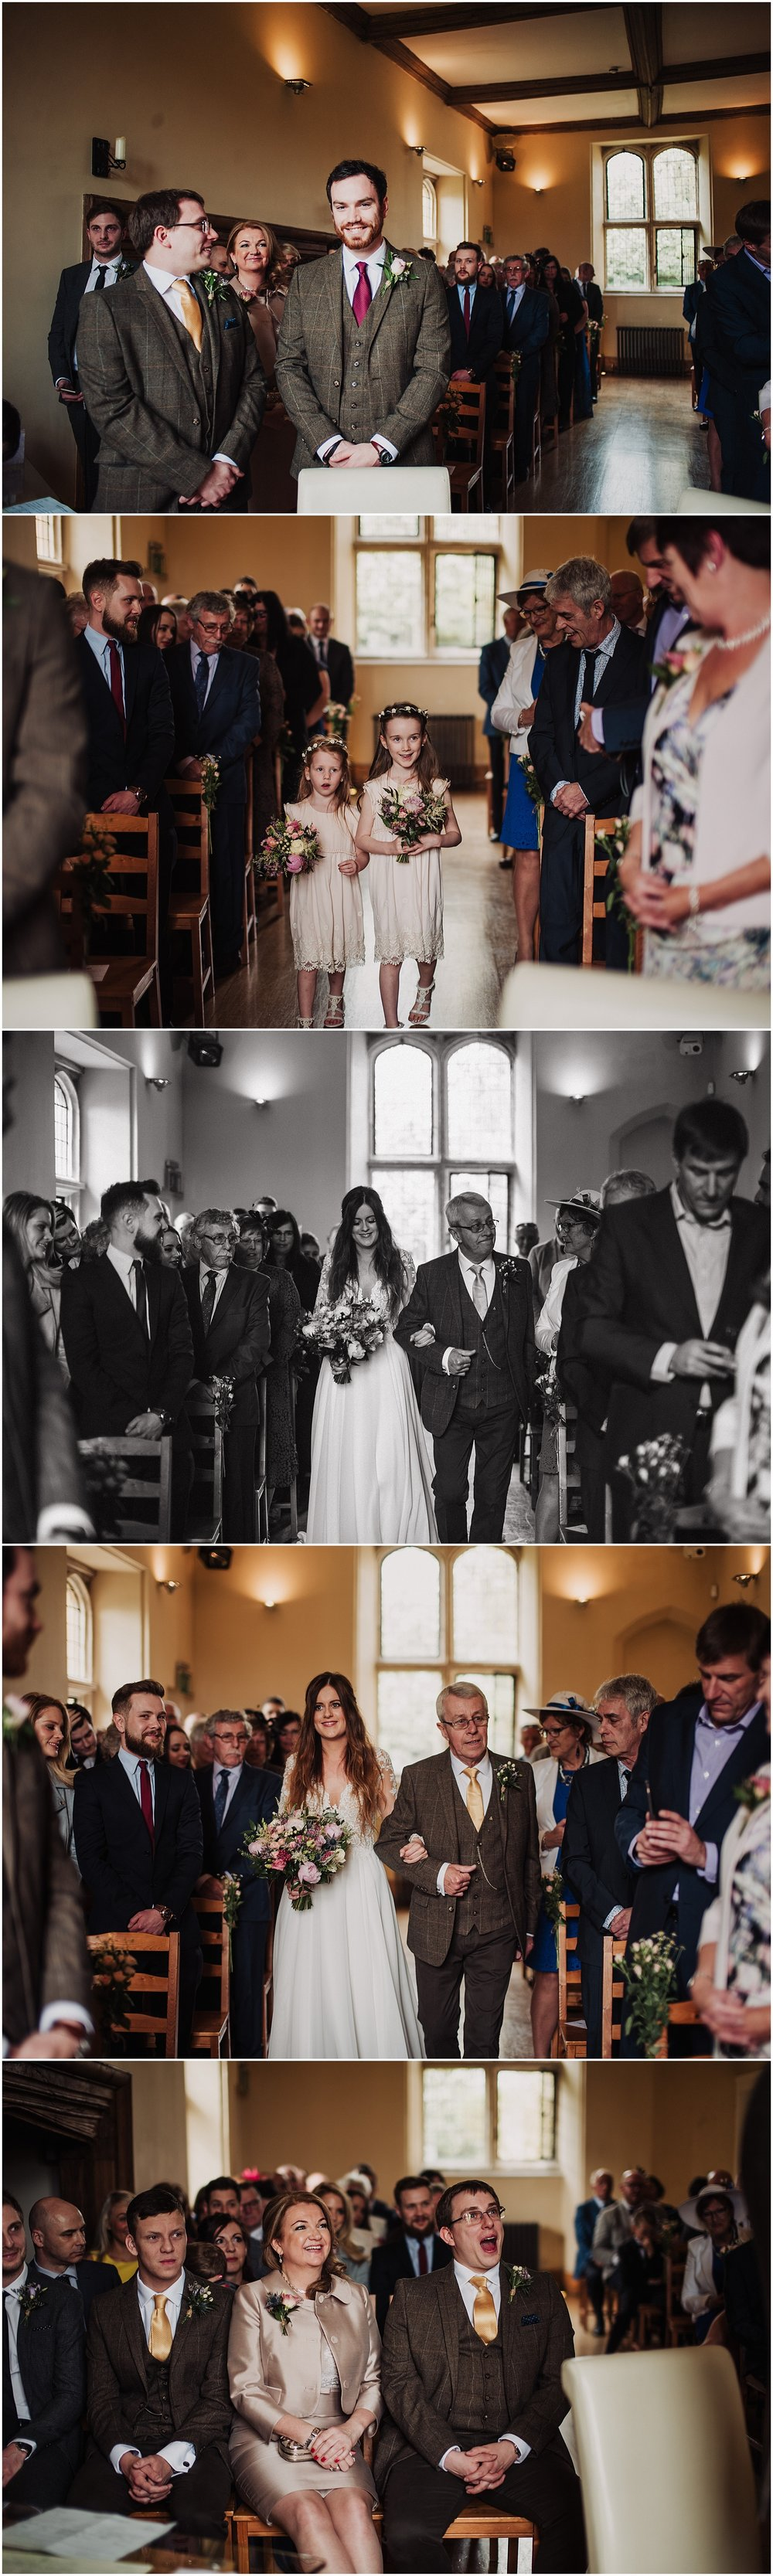 wedding ceremony at notley abbey